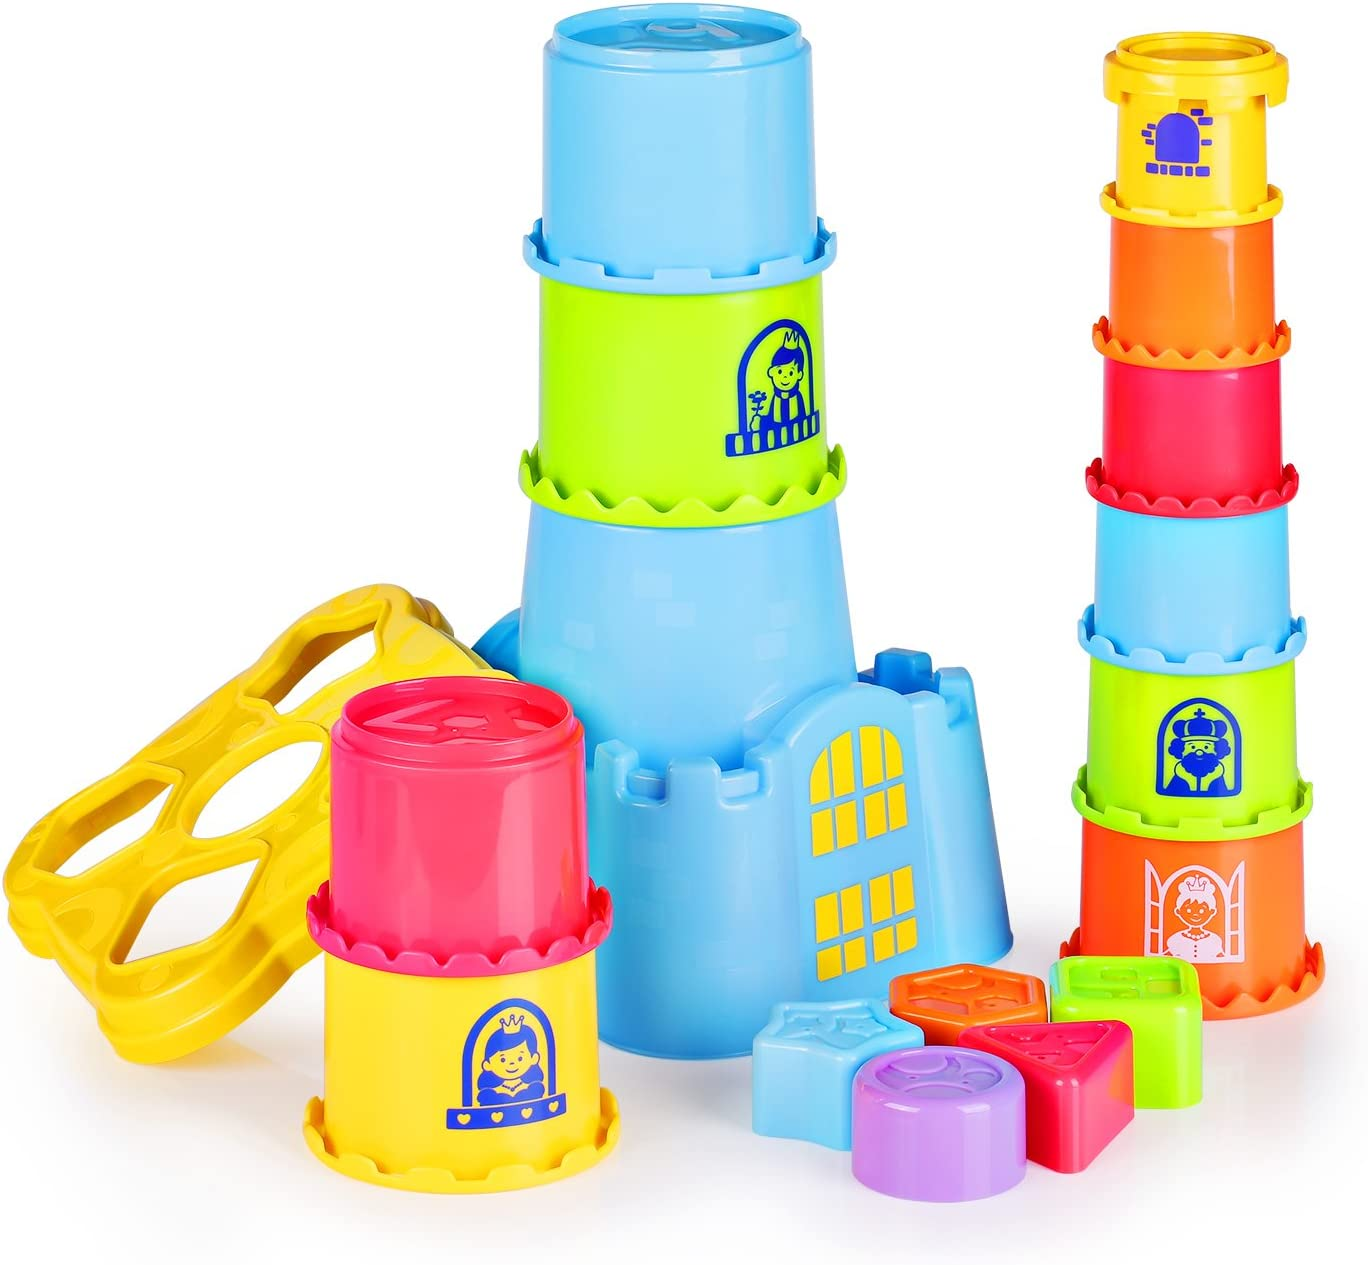 Happkid Stacking Cups with Castle Stacker for Toddler, Stacking and Sorting Nesting Toys Game for Kids